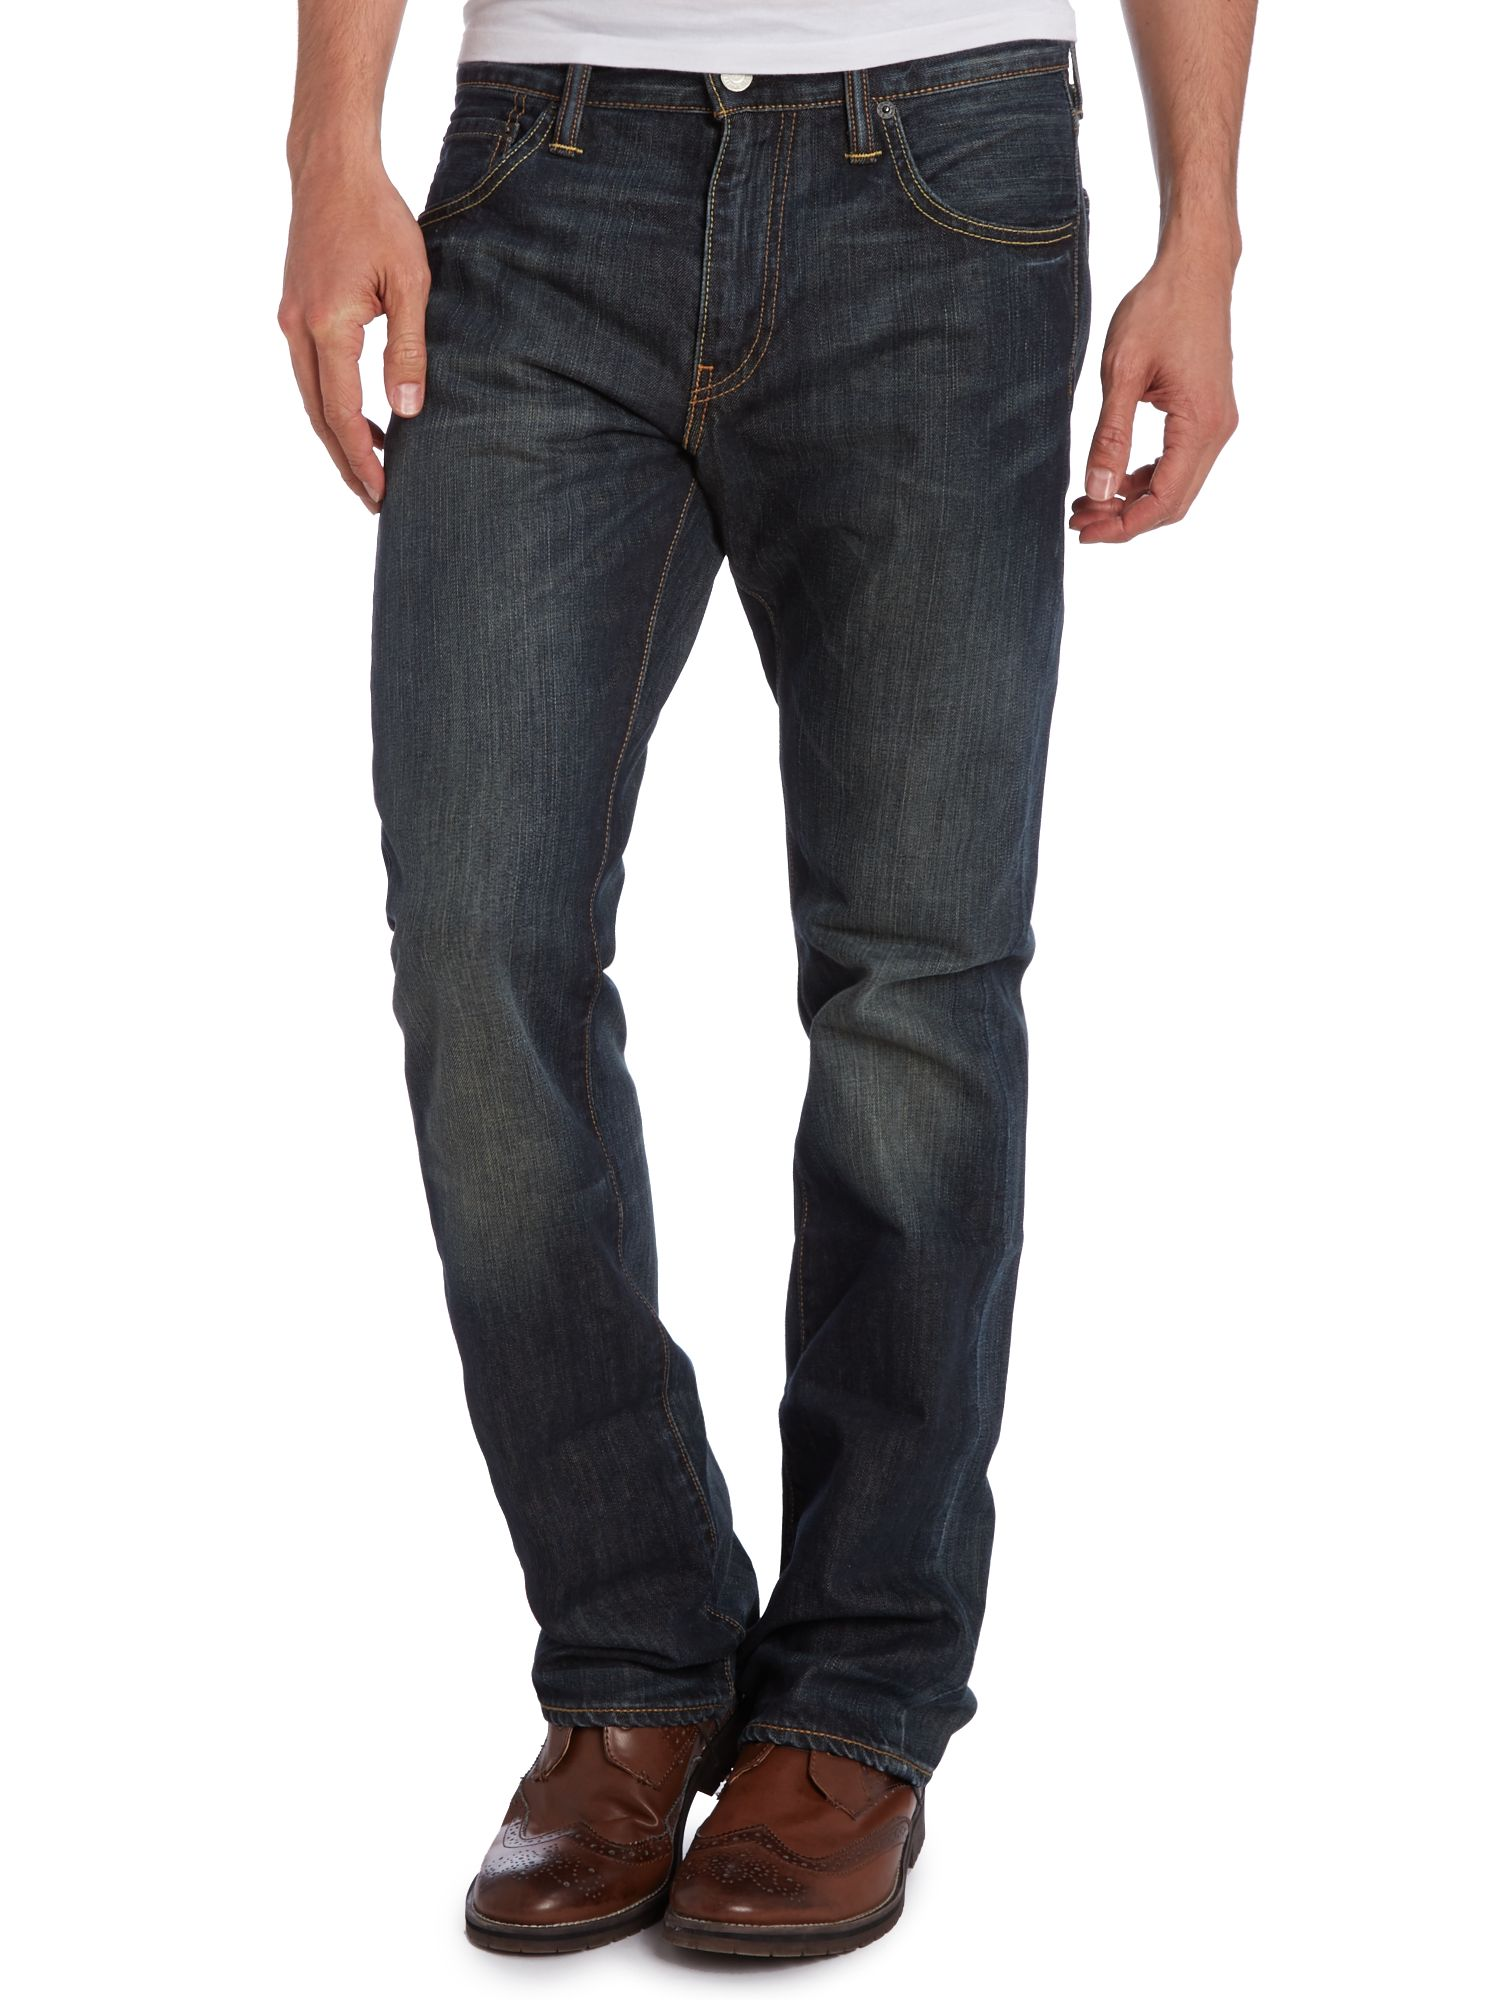 527 Bootcut Dusty Black washed jeans